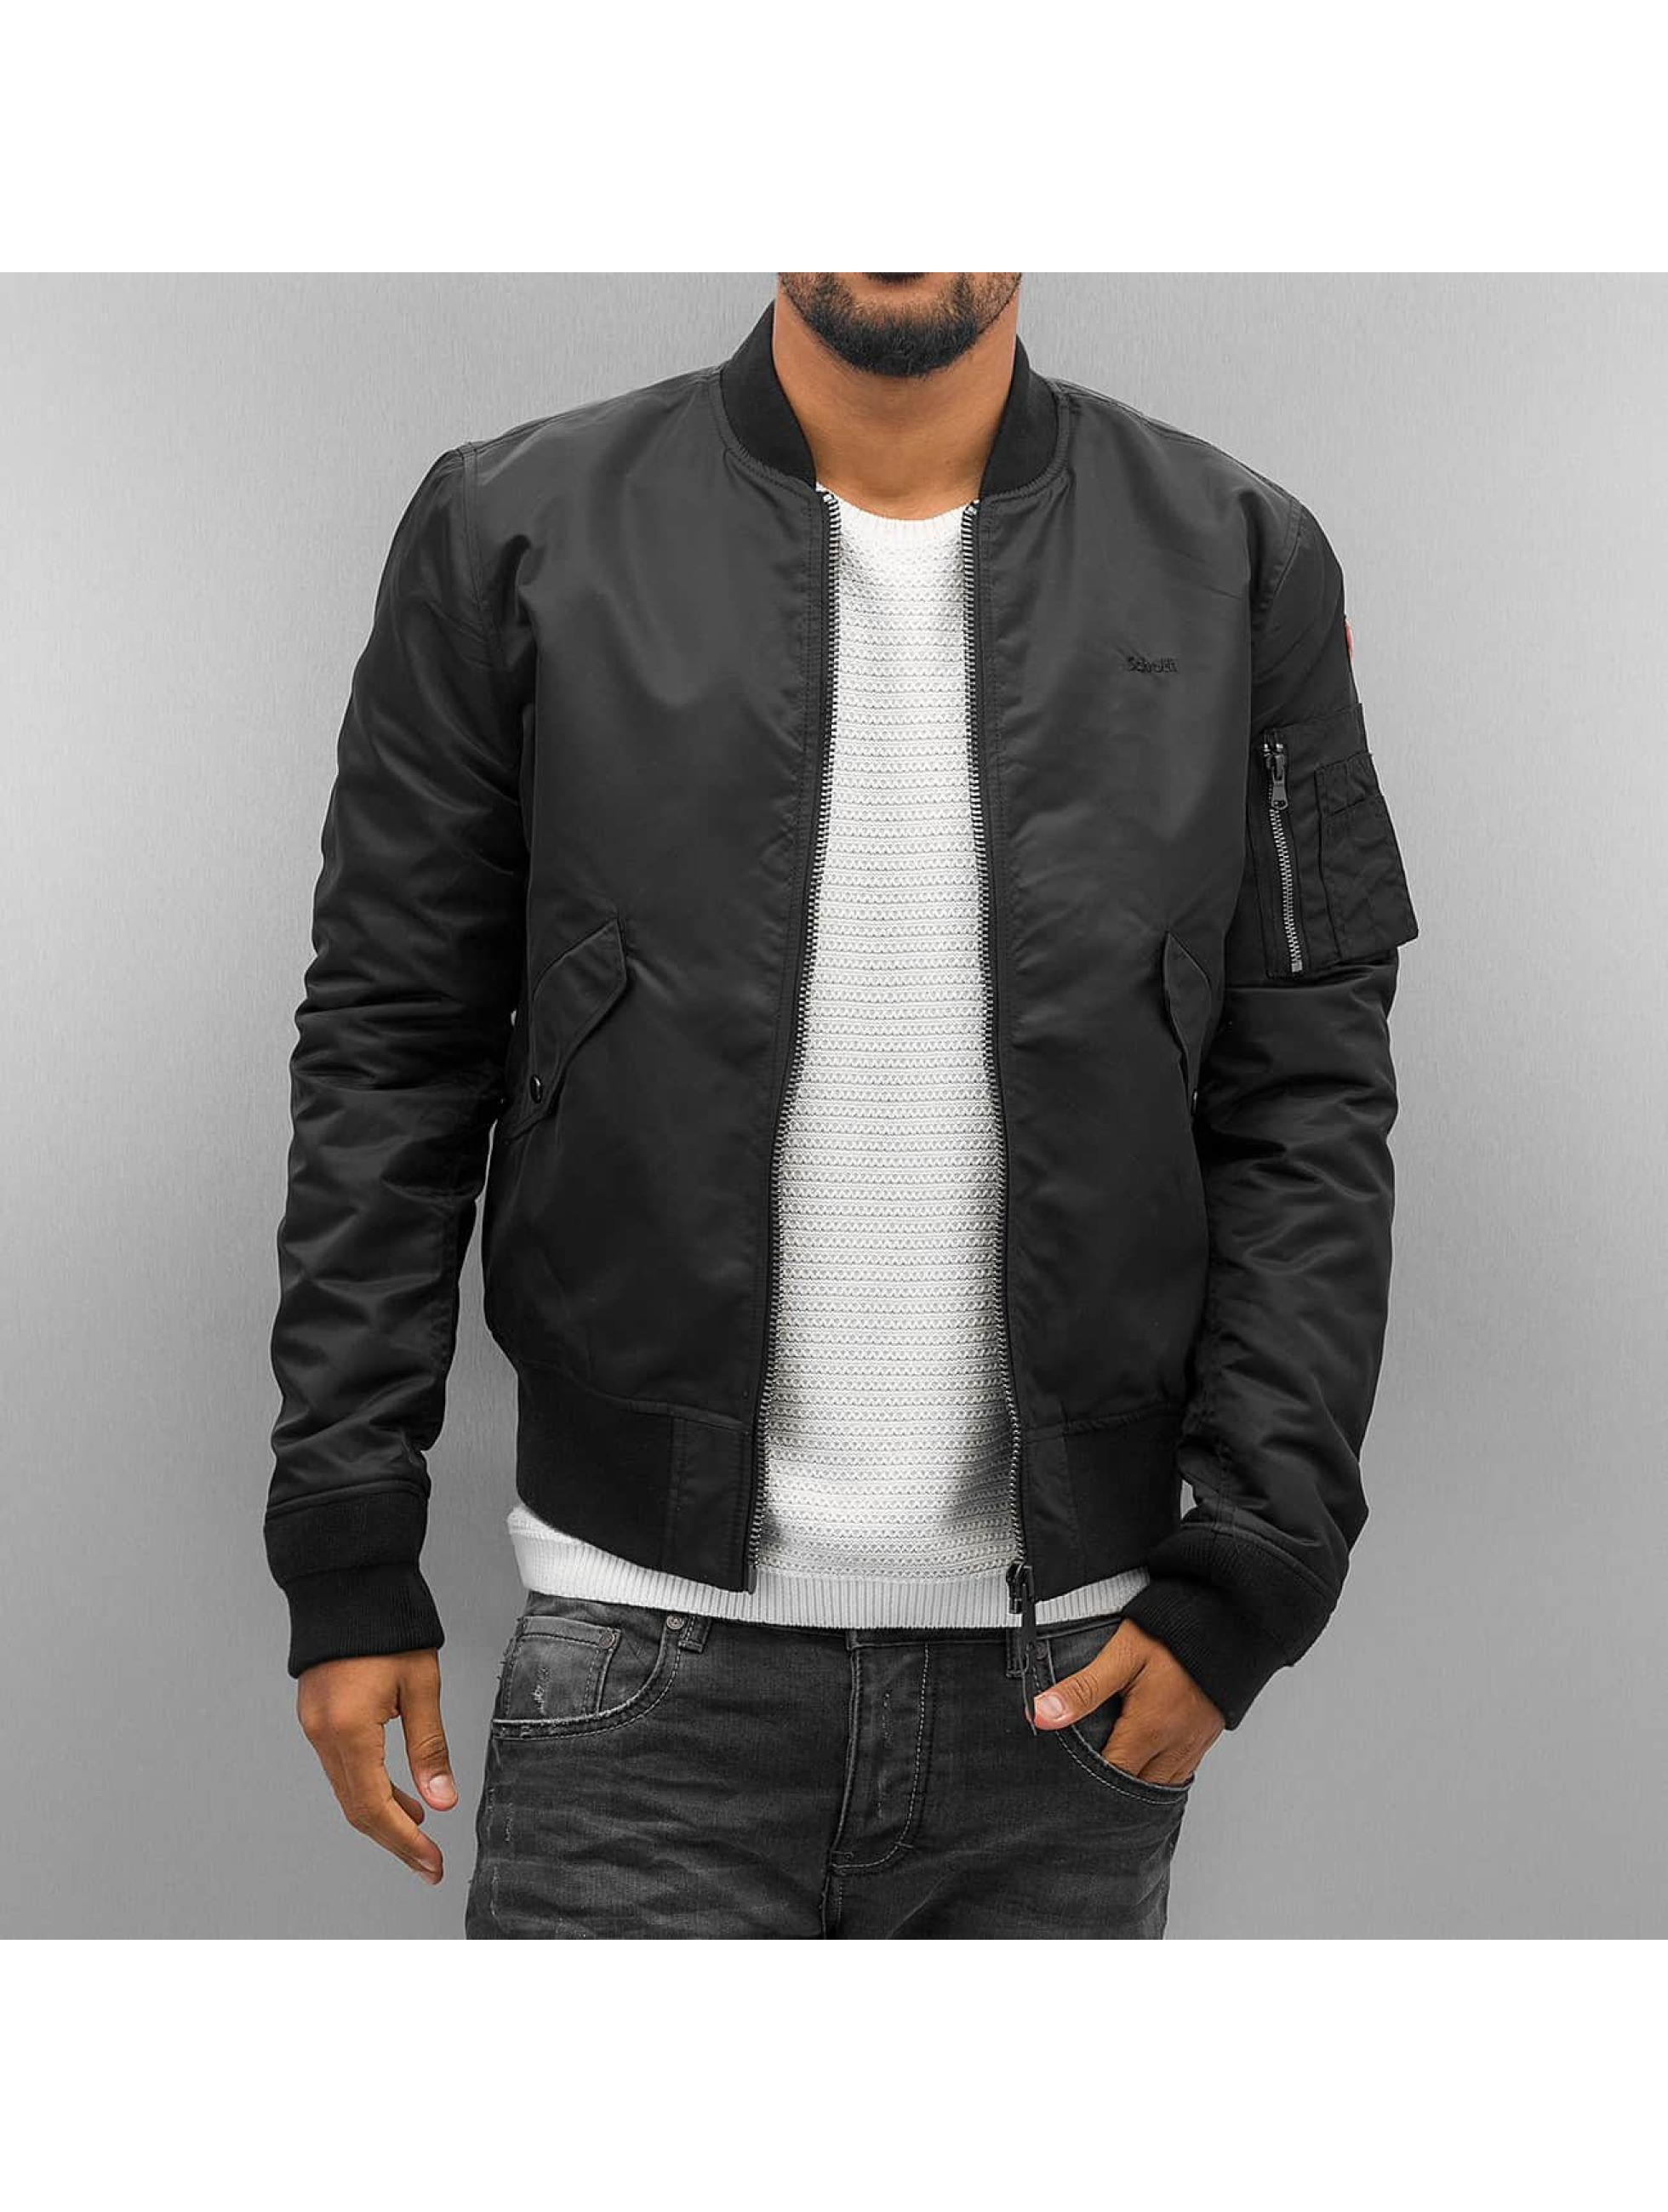 Schott NYC Bomber jacket NYC black